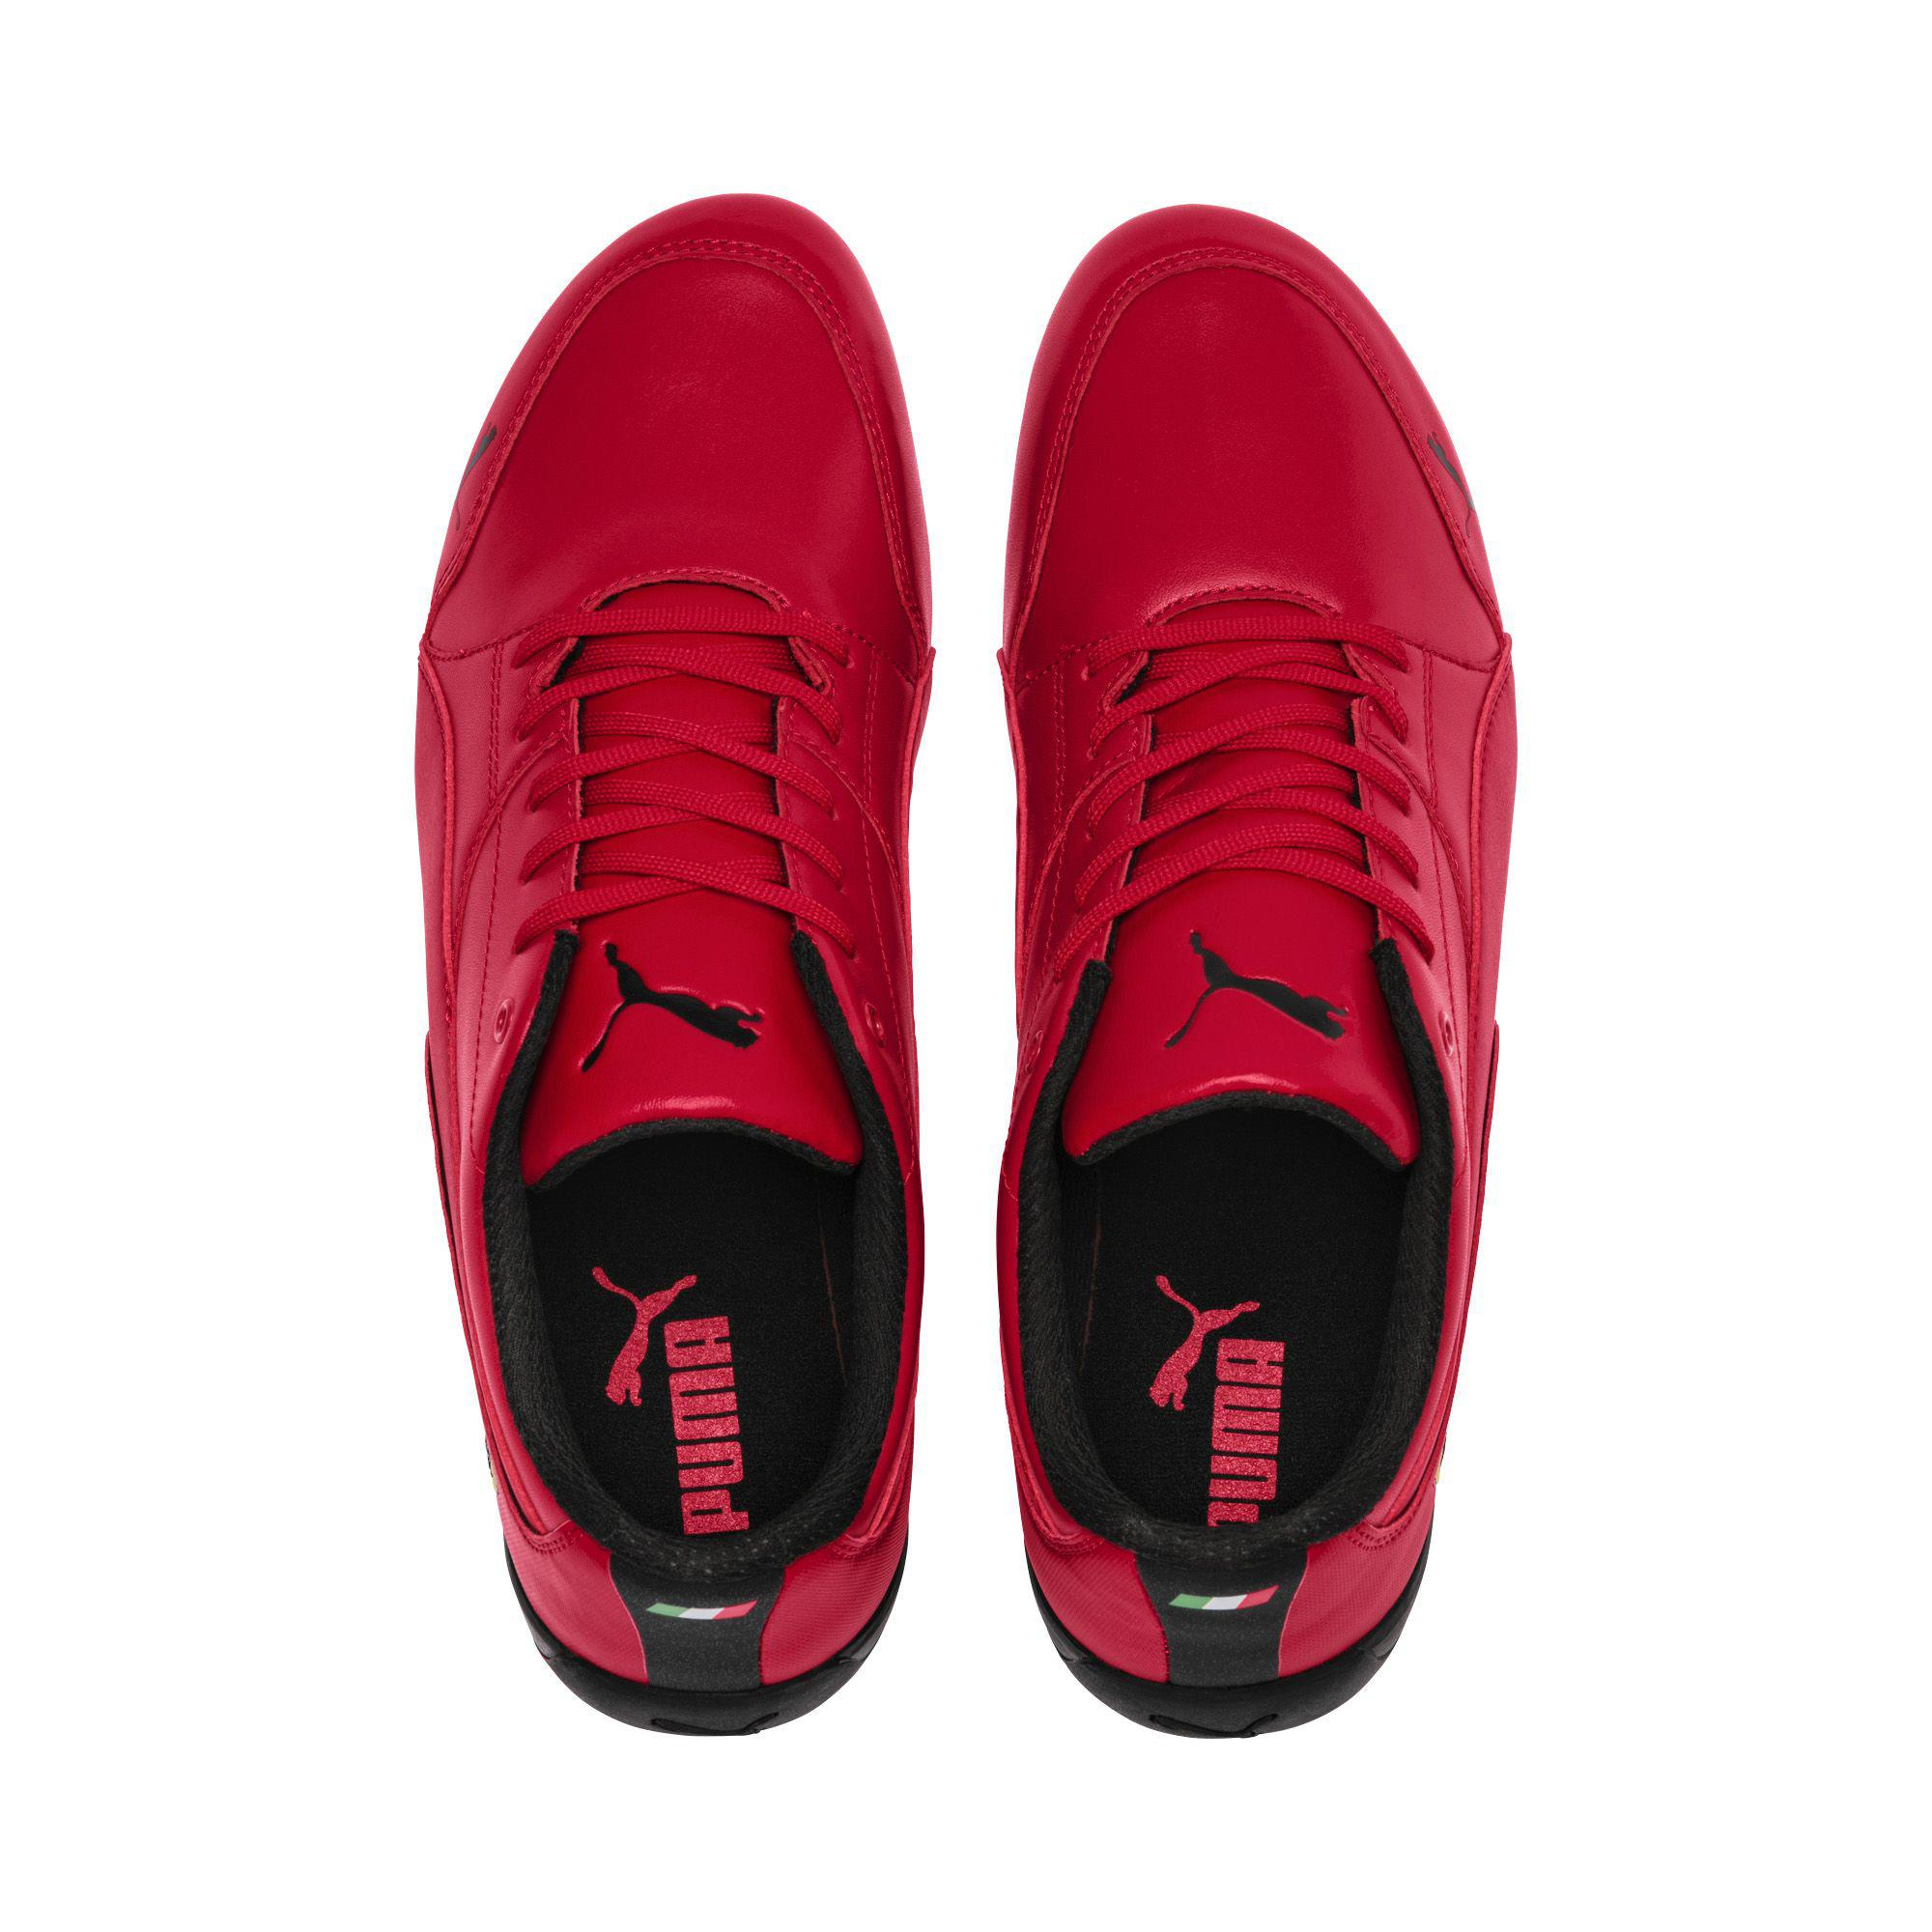 Lyst - PUMA Ferrari Drift Cat 7 Sneakers in Red for Men 0d4587408